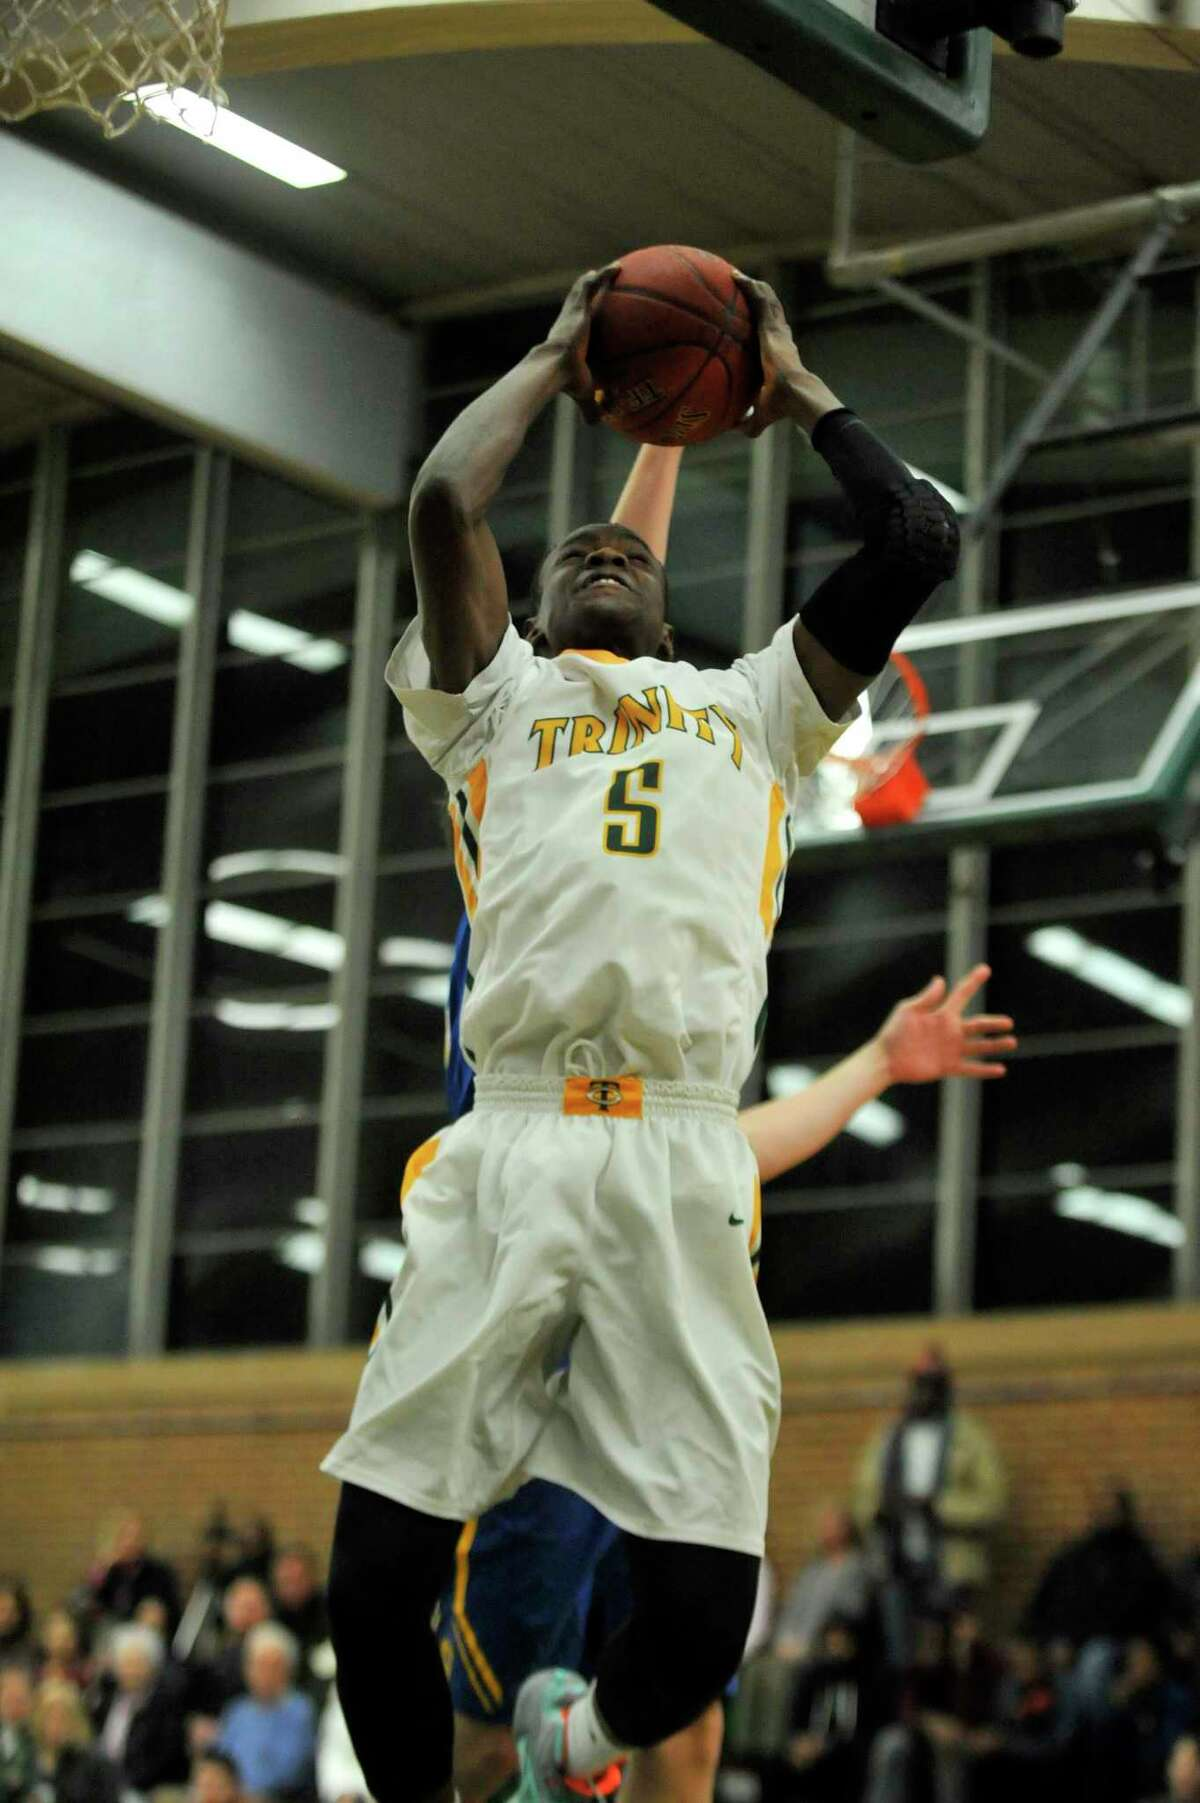 Former Trinity Catholic star Cantavio Dutreil has committed to play at Sacred Heart University.